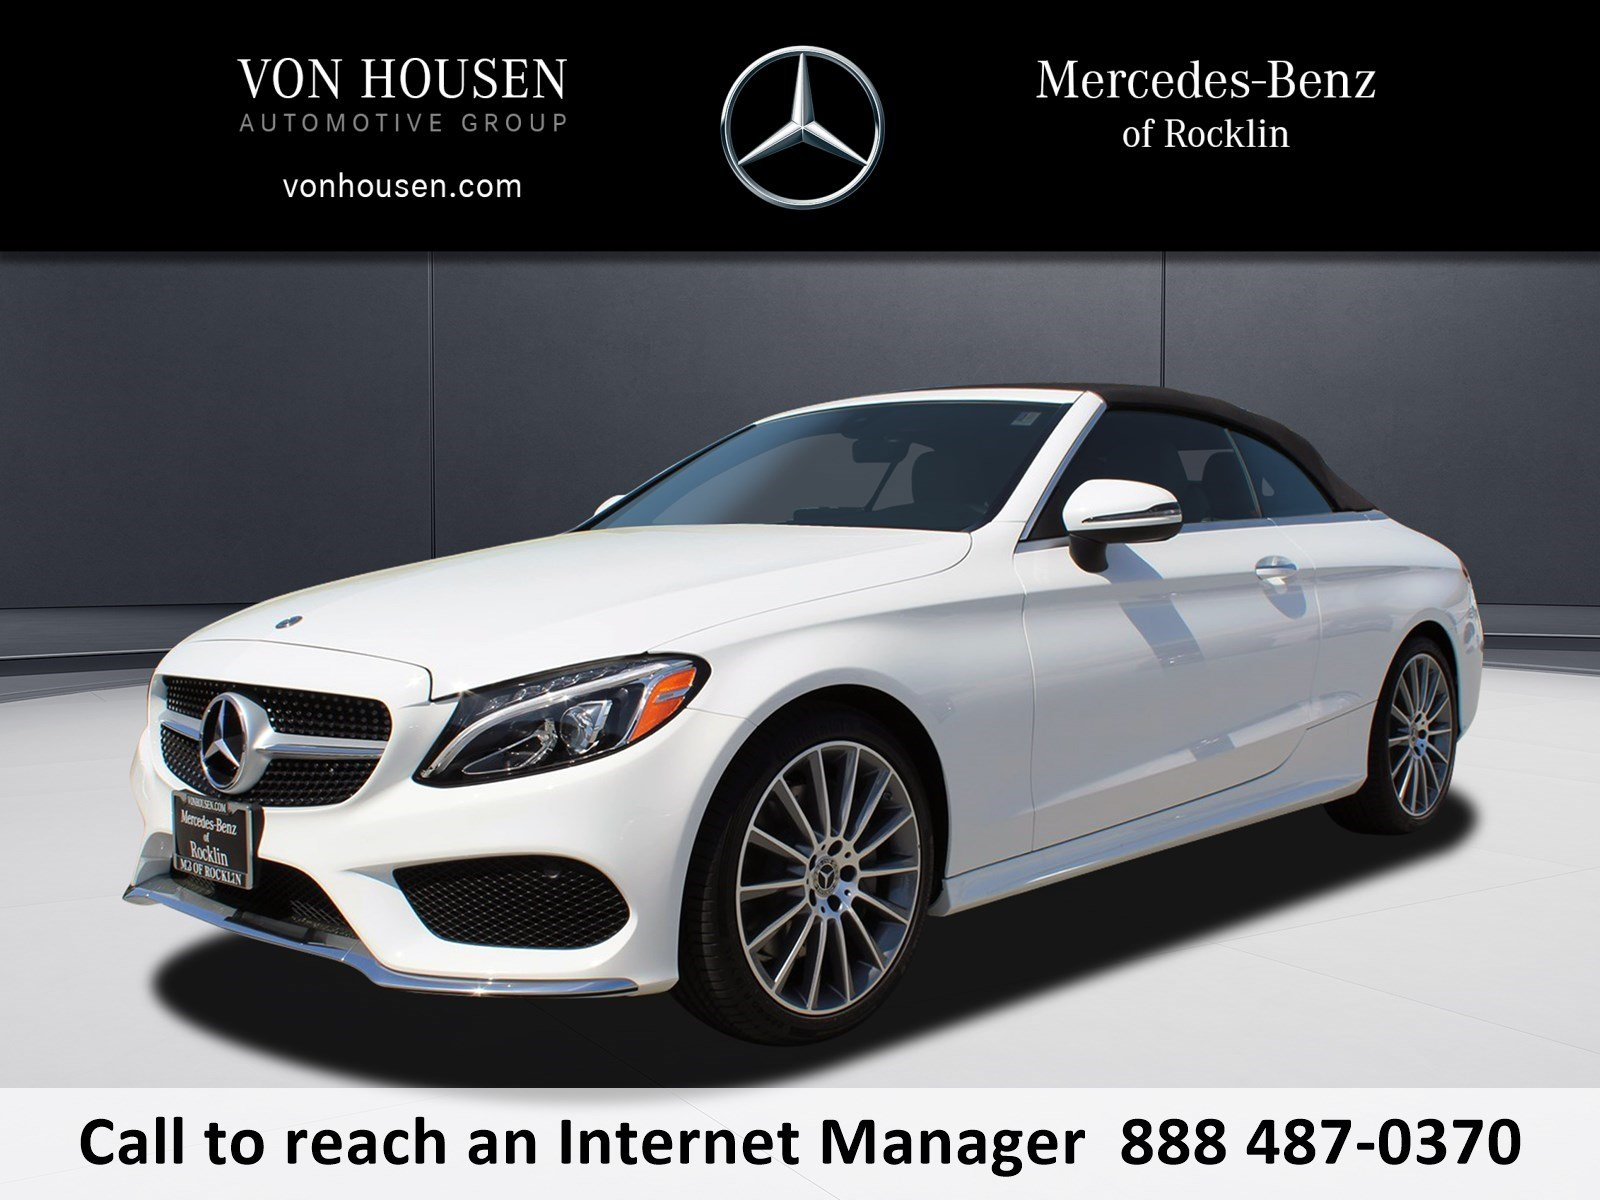 New 2018 Mercedes Benz C Class C 300 Sport CABRIOLET in Rocklin